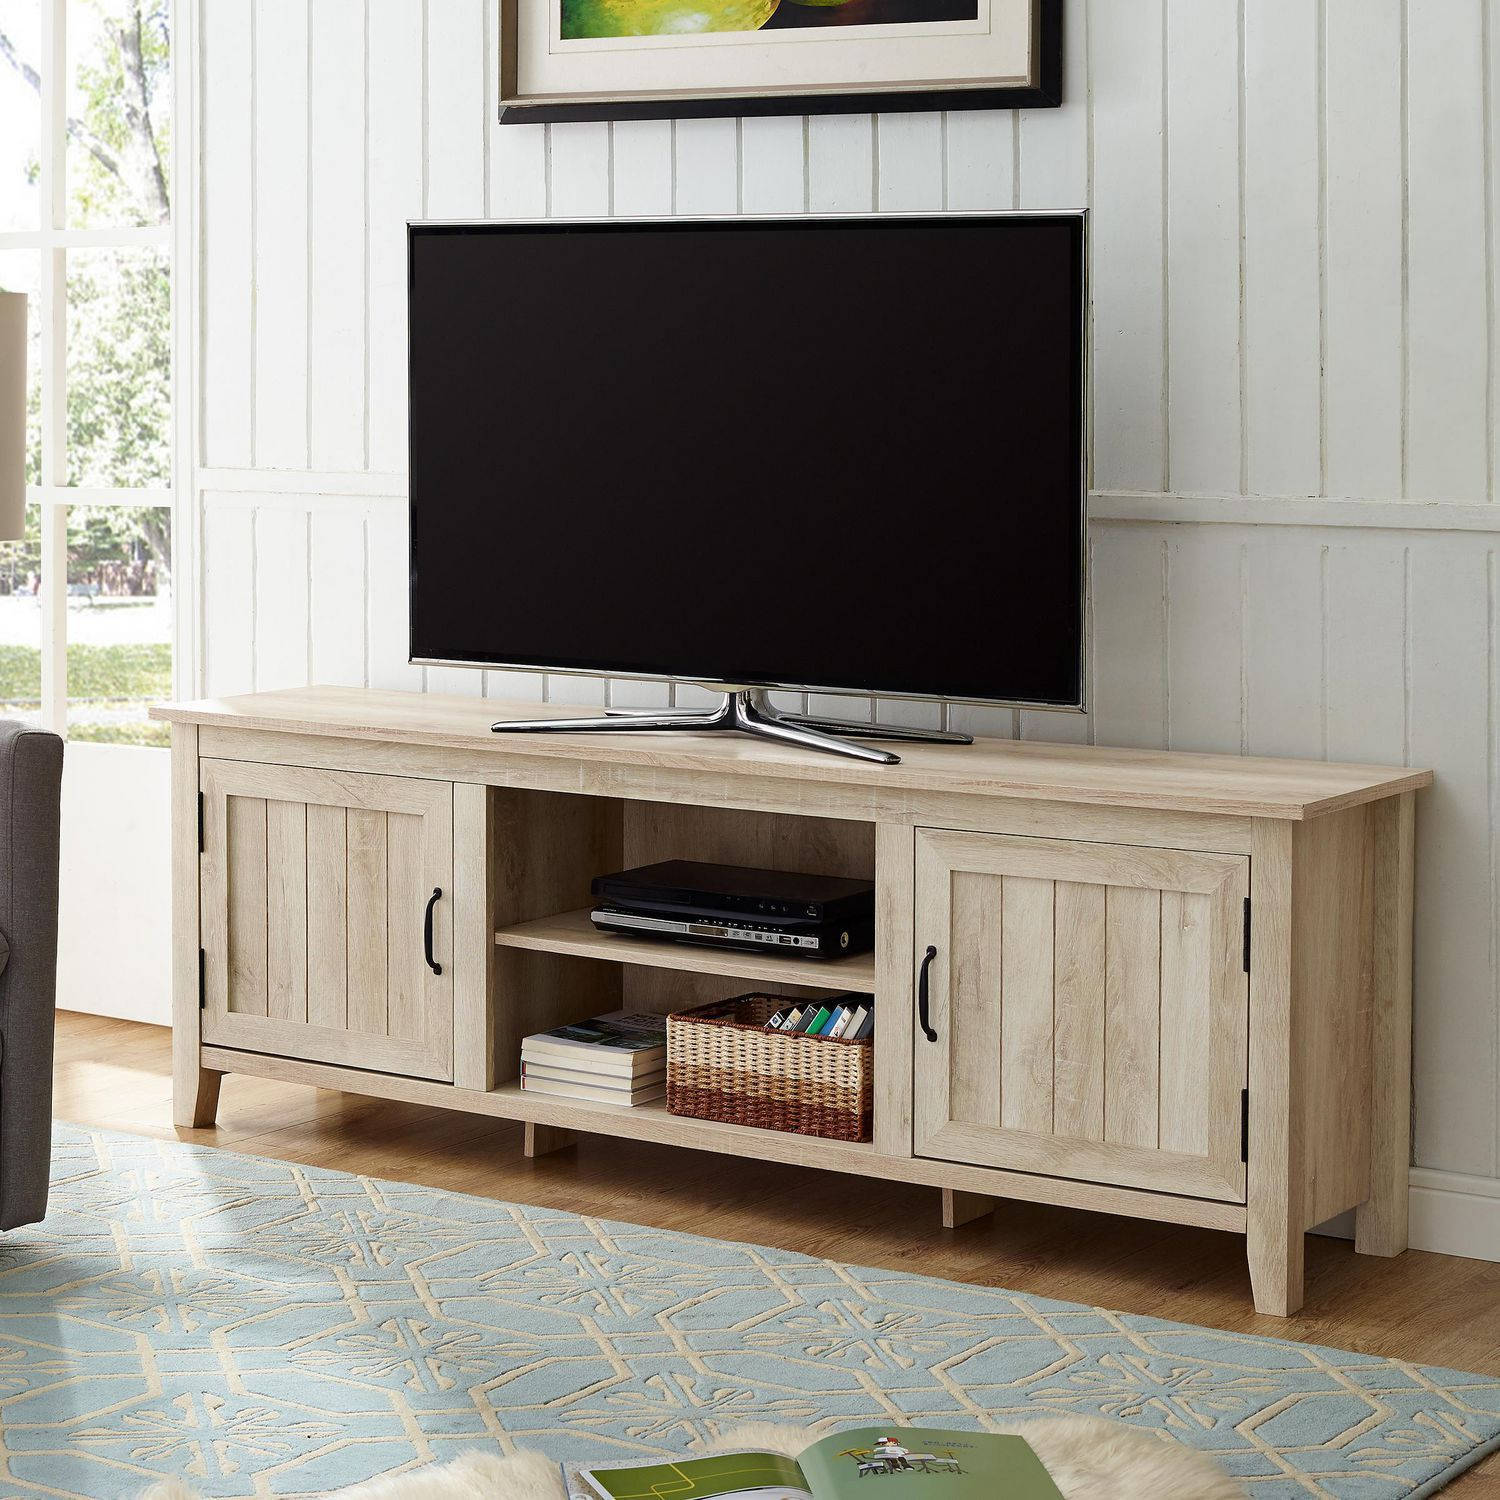 Manor Park Modern Farmhouse TV Stand with 2 Doors for TV's